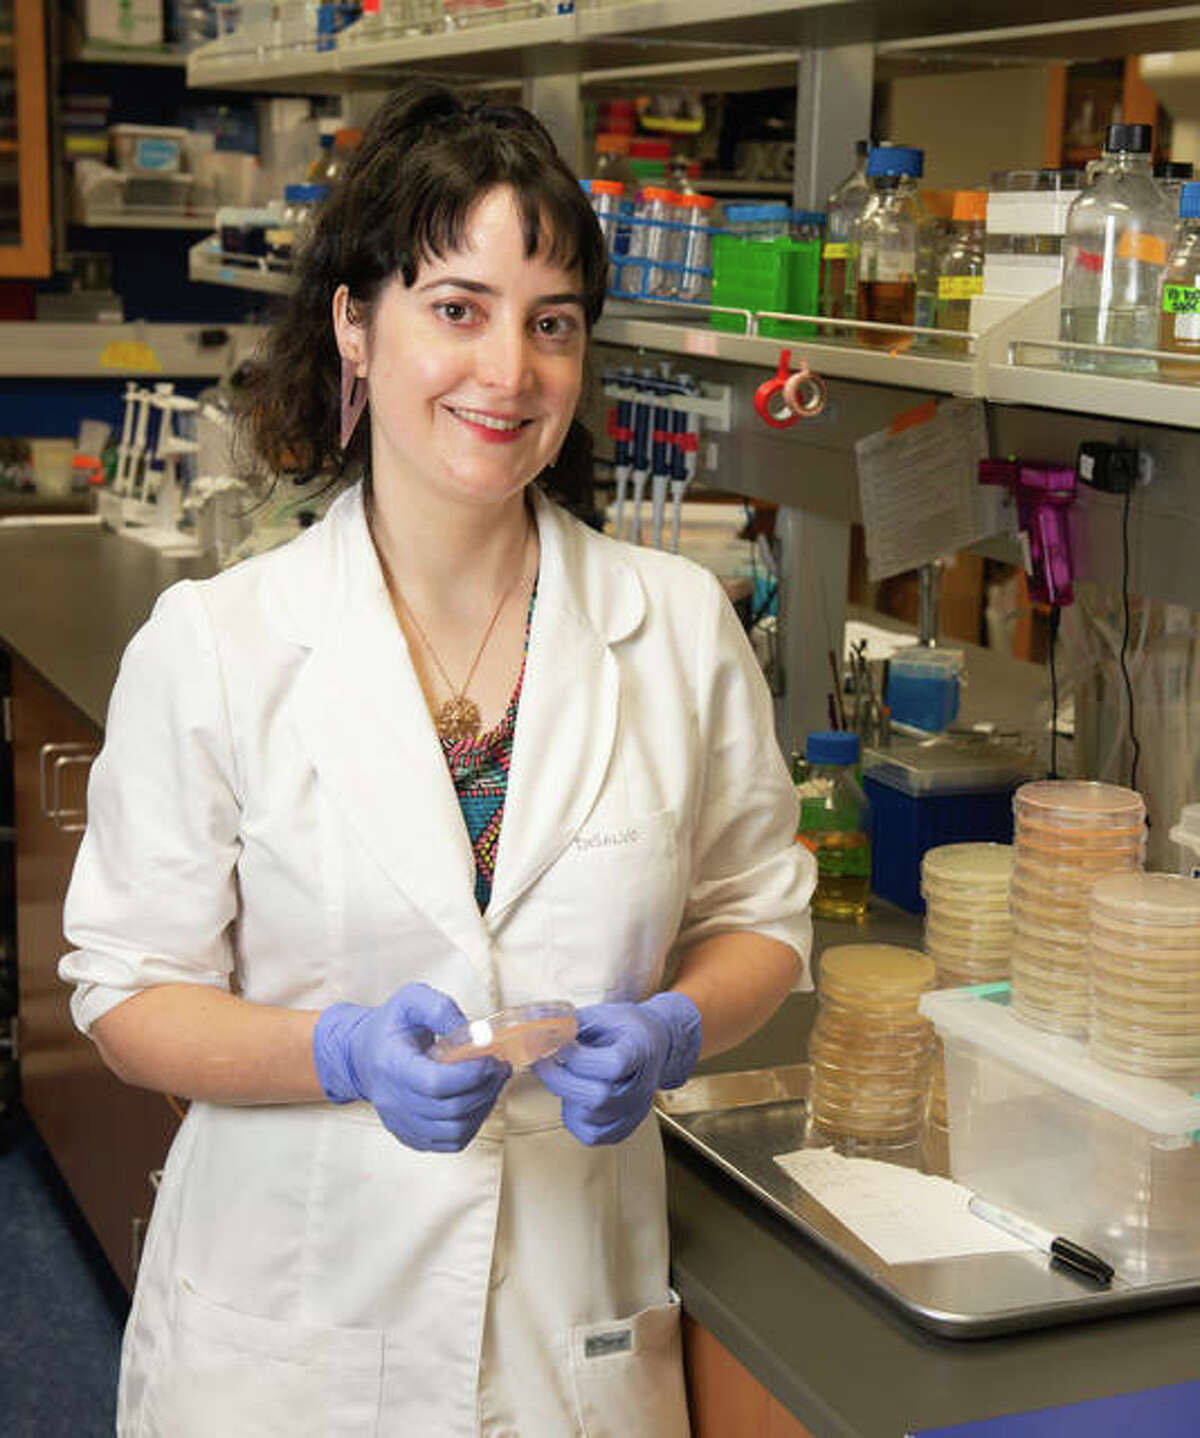 Susanne DiSalvo at Southern Illinois University Edwardsville has received the National Science Foundation CAREER Award totaling $463,557.